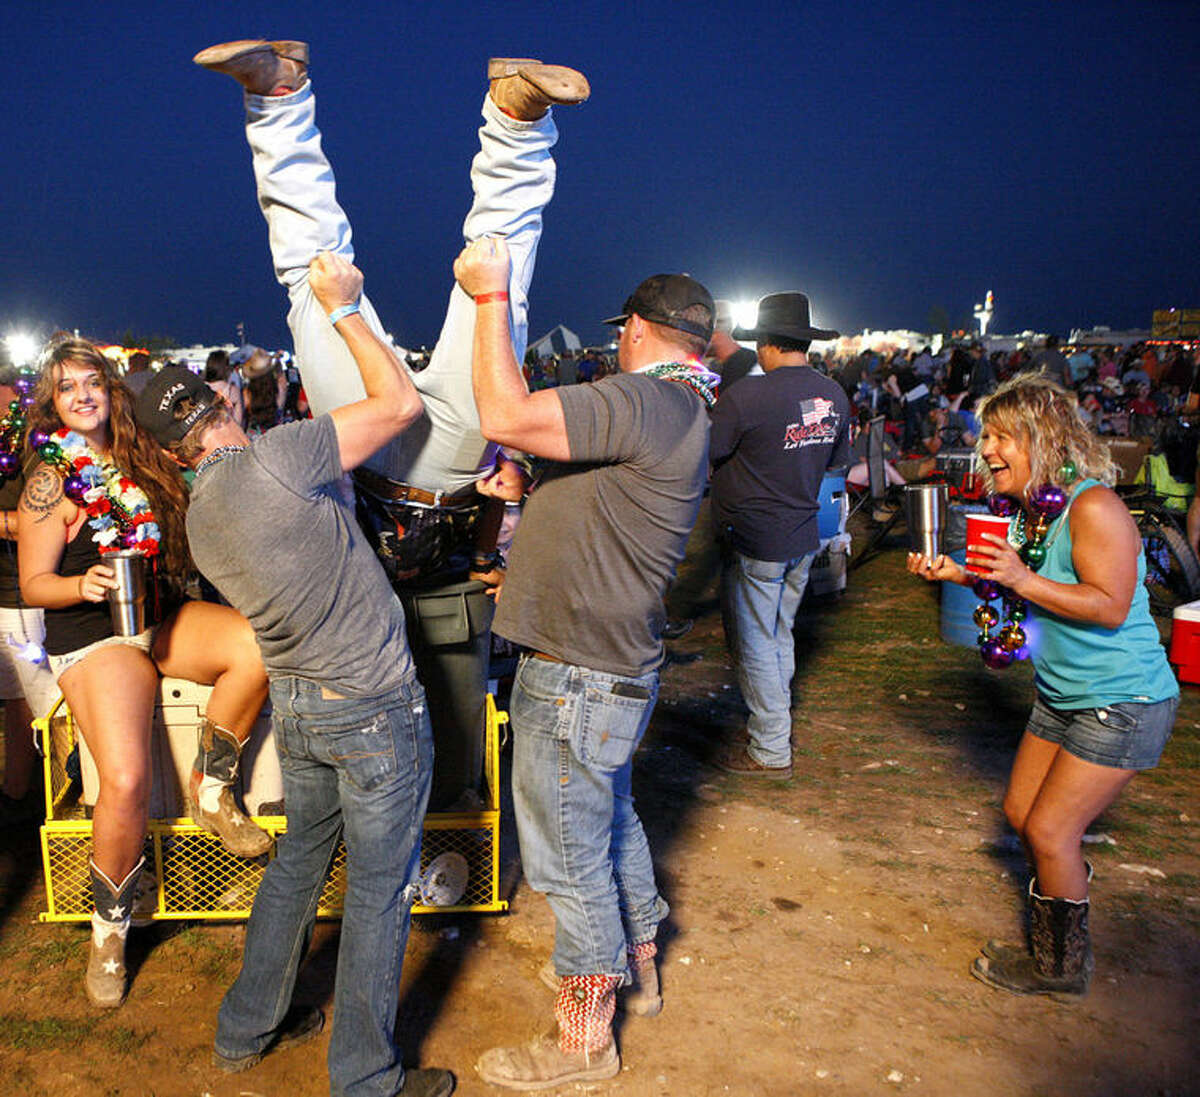 Hundreds of country music fans came to the 2015 Crude Fest in Midland, where headliners such as Josh Abbott Band filled the stage and nearby air with a country drawl of sound.